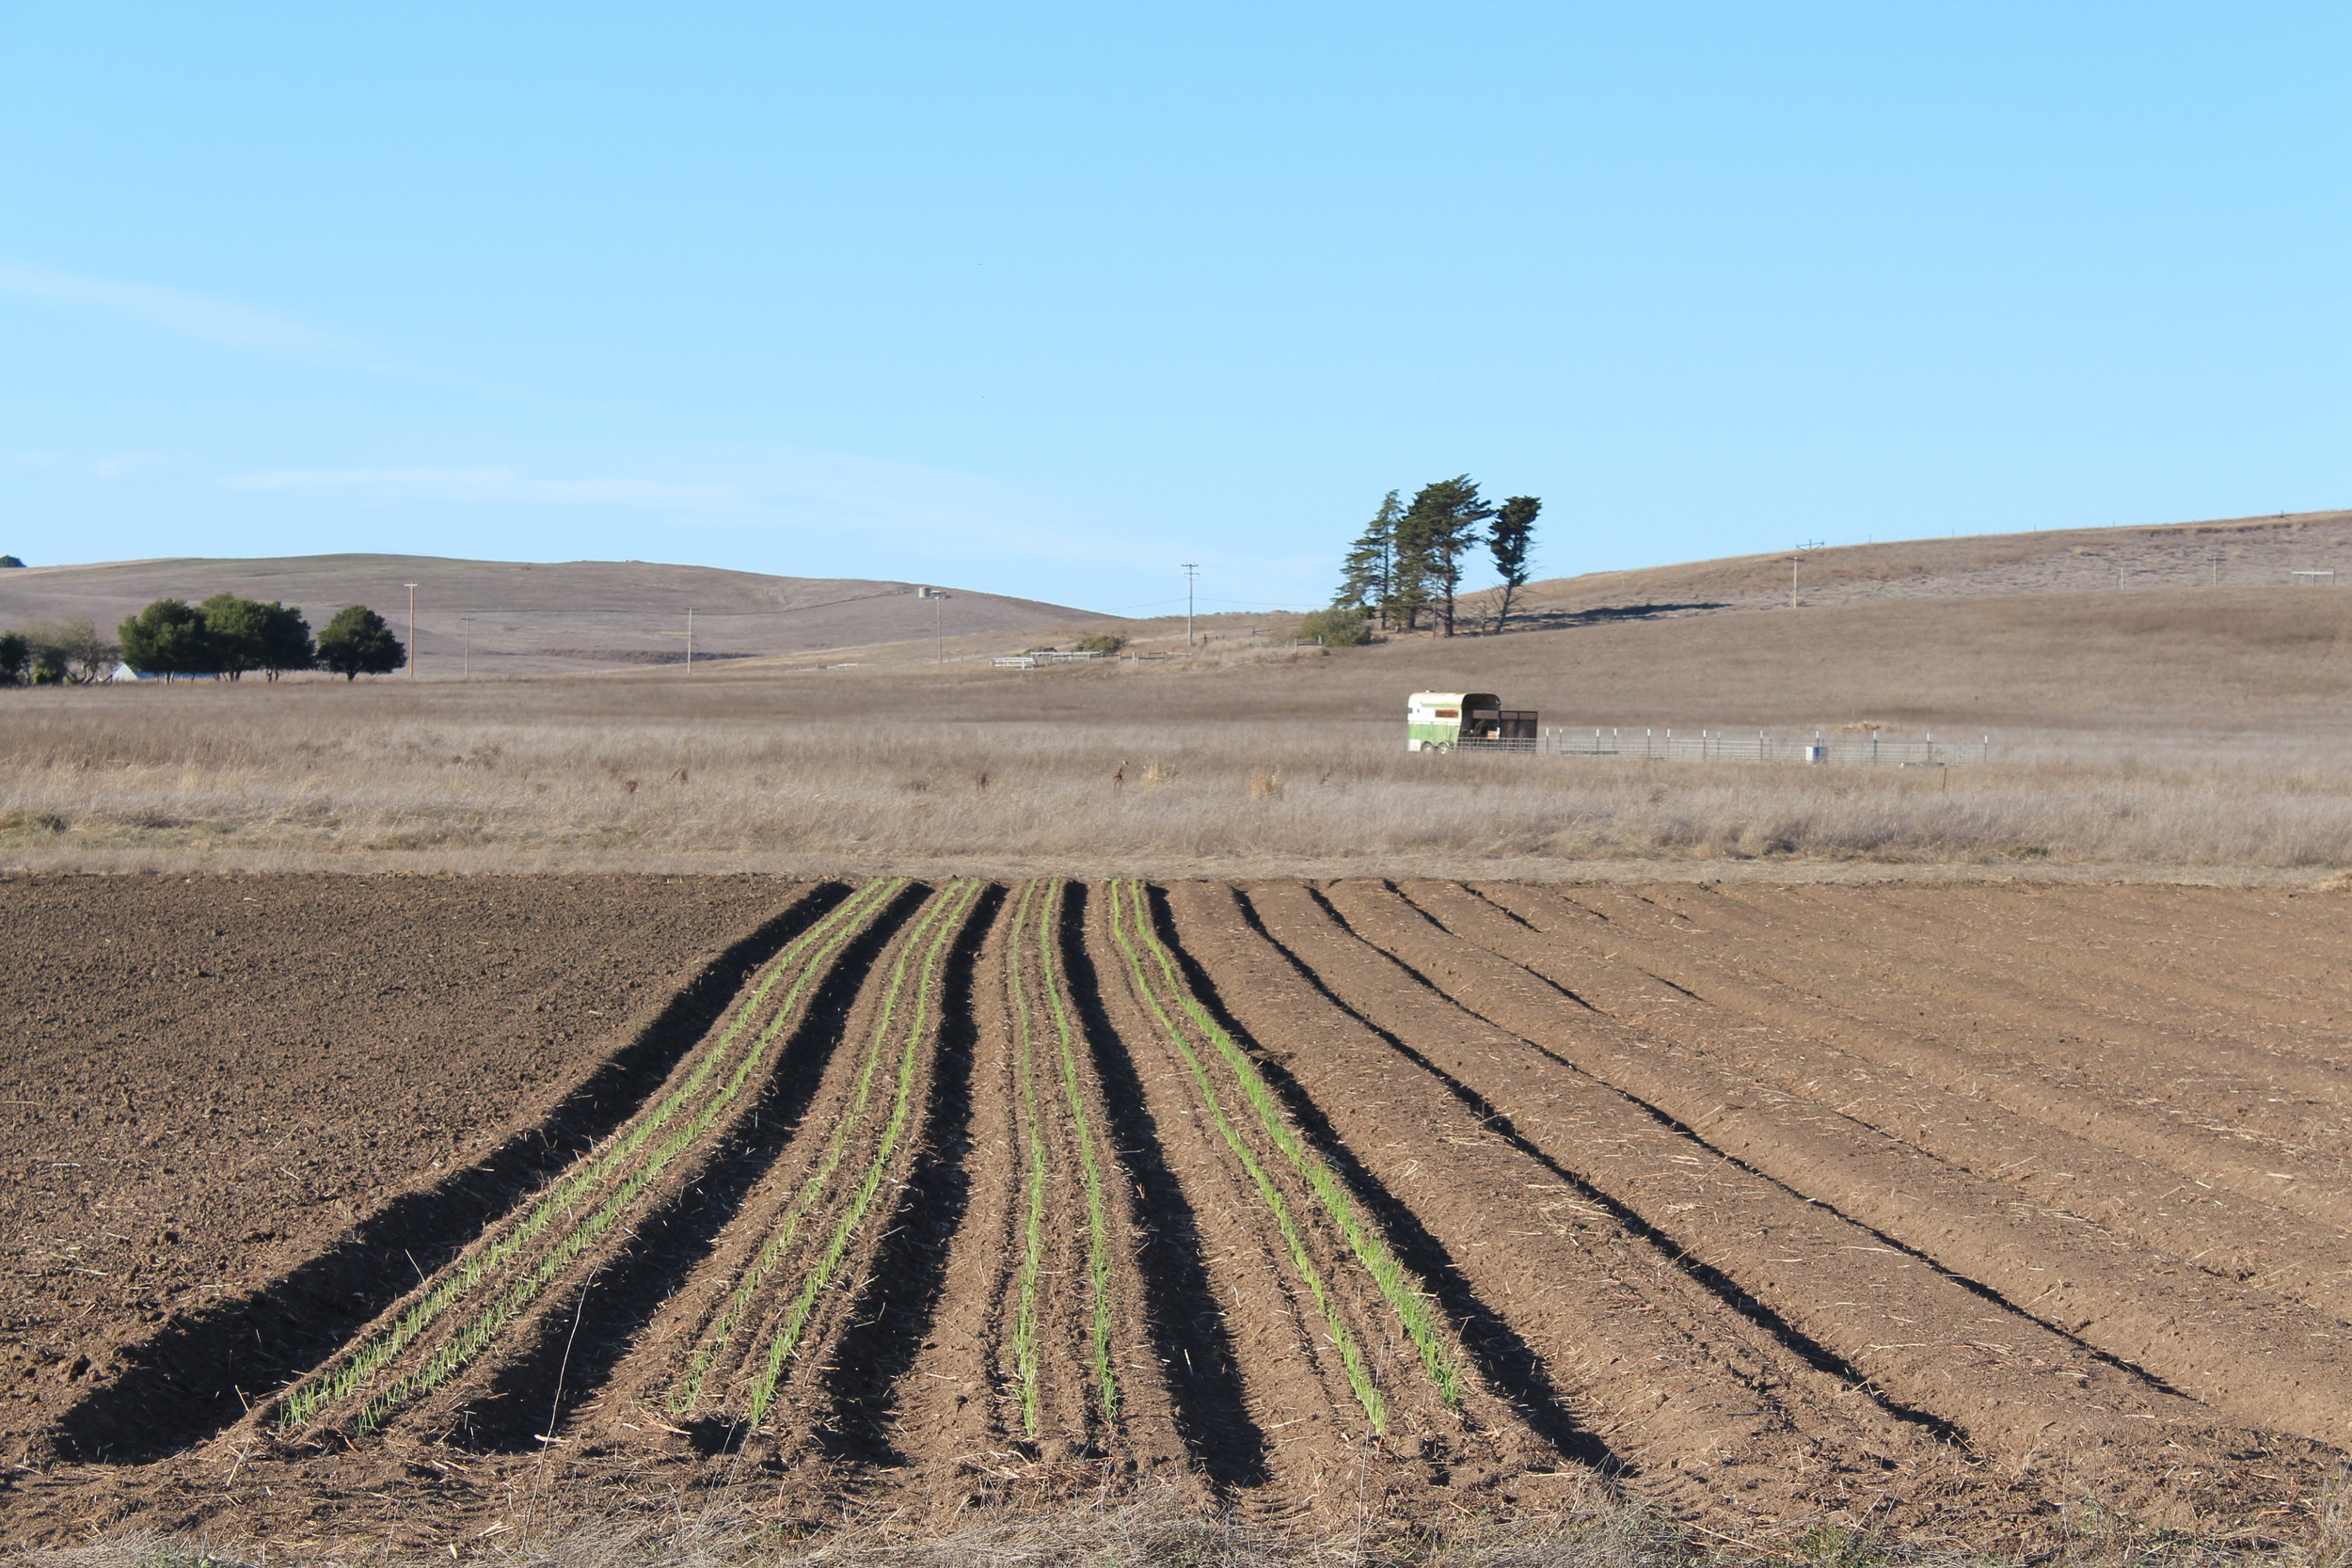 Spring Onions in the ground with the pig trailer in the background.